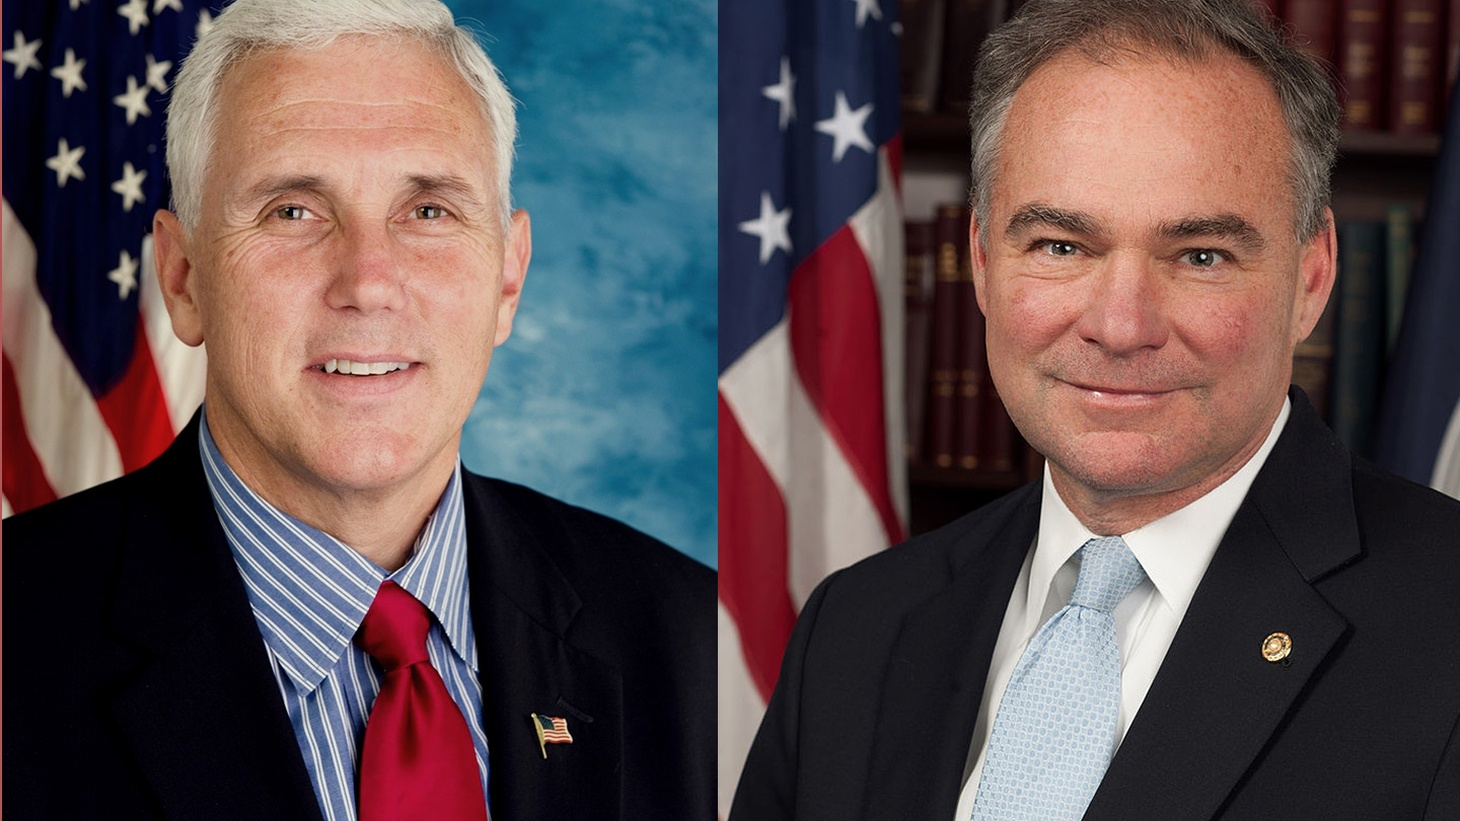 "The two VP candidates, Kaine and Pence, debate Tuesday. Both are devout Christians, but so far this presidential contest has been noteworthy for its lack of focus on social issues. Where do the so-called ""values voters"" stand this election?"